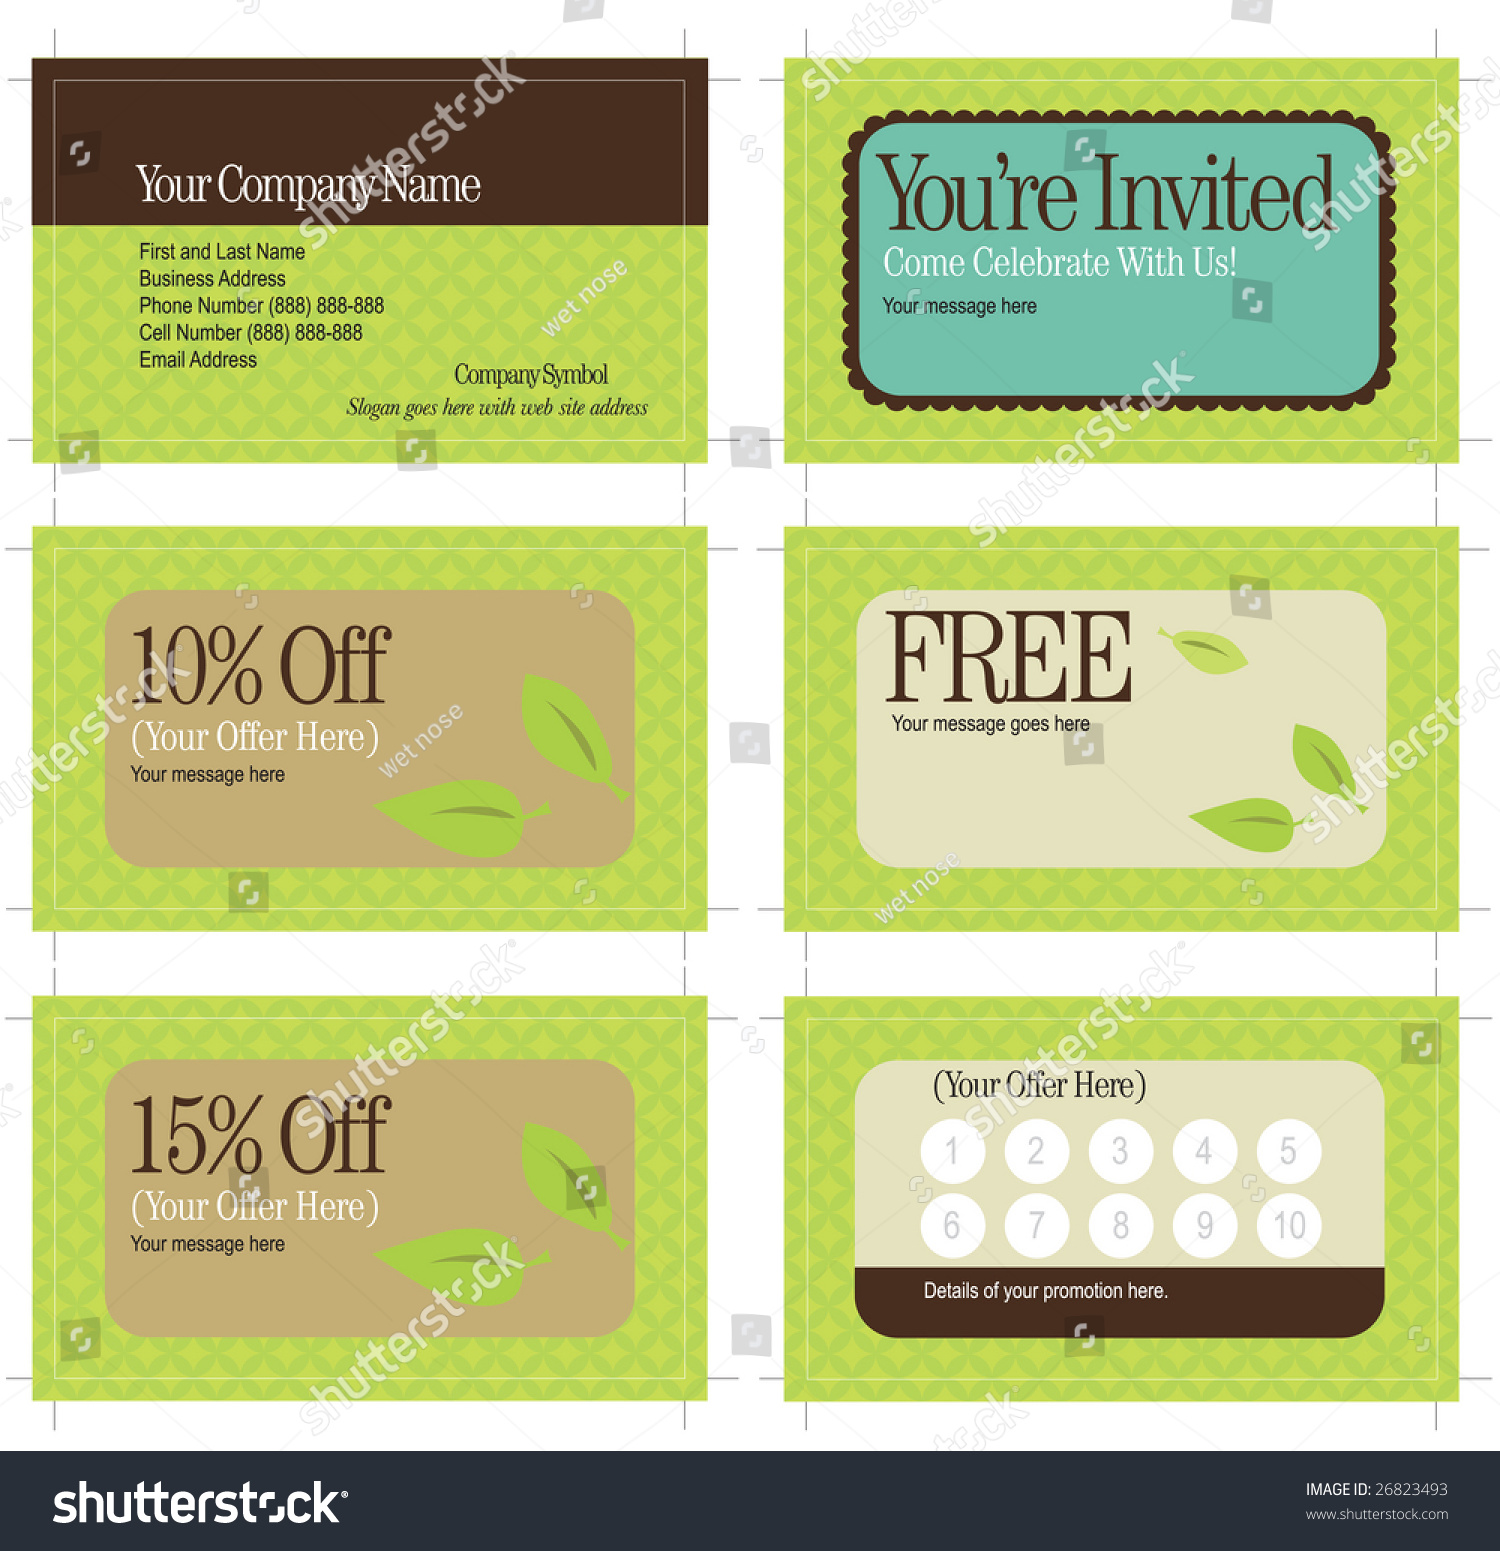 35x2 Business Card Promo Cards Includes Stock Vector 26823493 ...